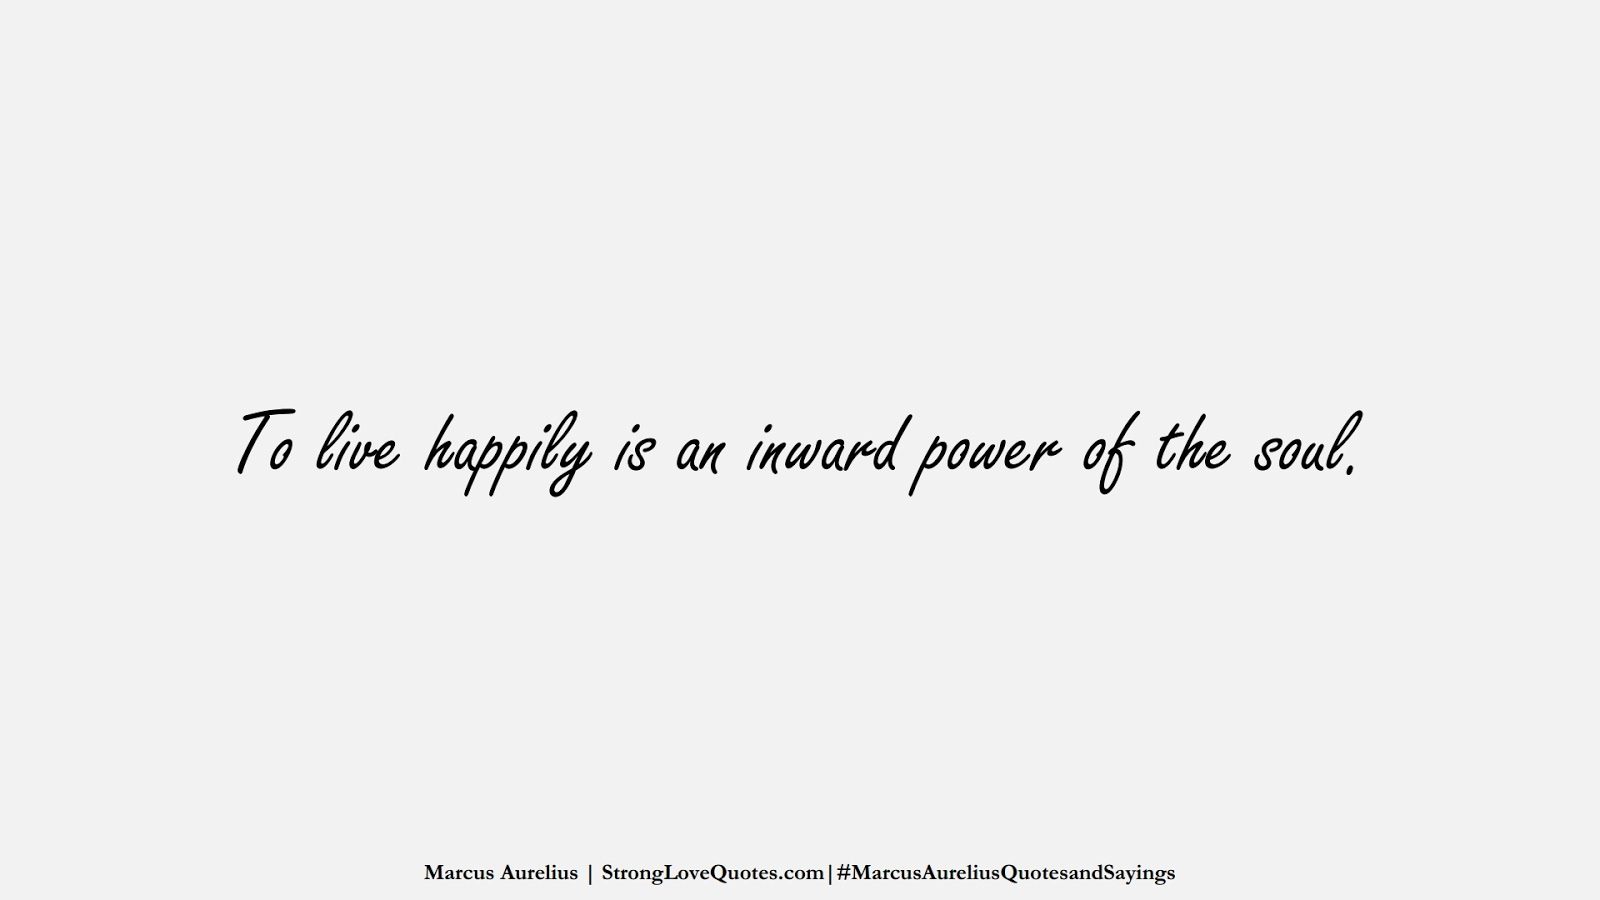 To live happily is an inward power of the soul. (Marcus Aurelius);  #MarcusAureliusQuotesandSayings